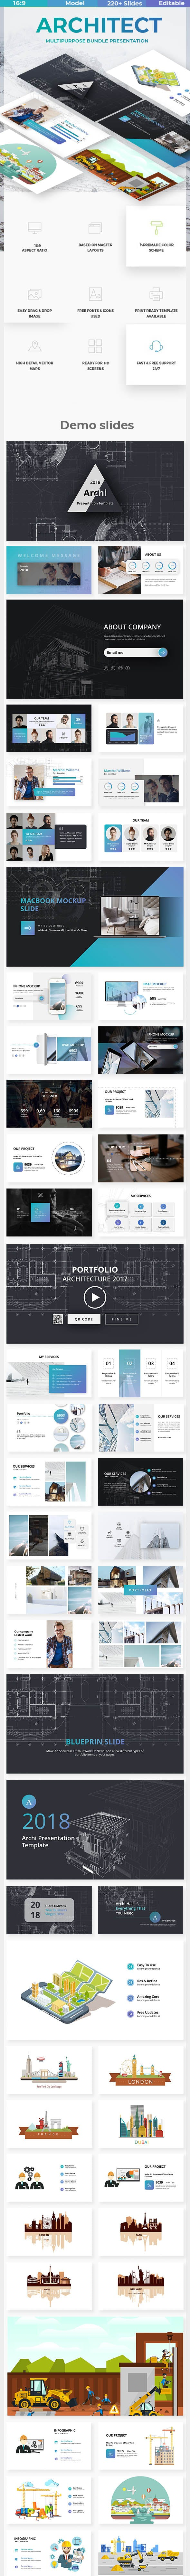 archi premium powerpoint template by este studio graphicriver